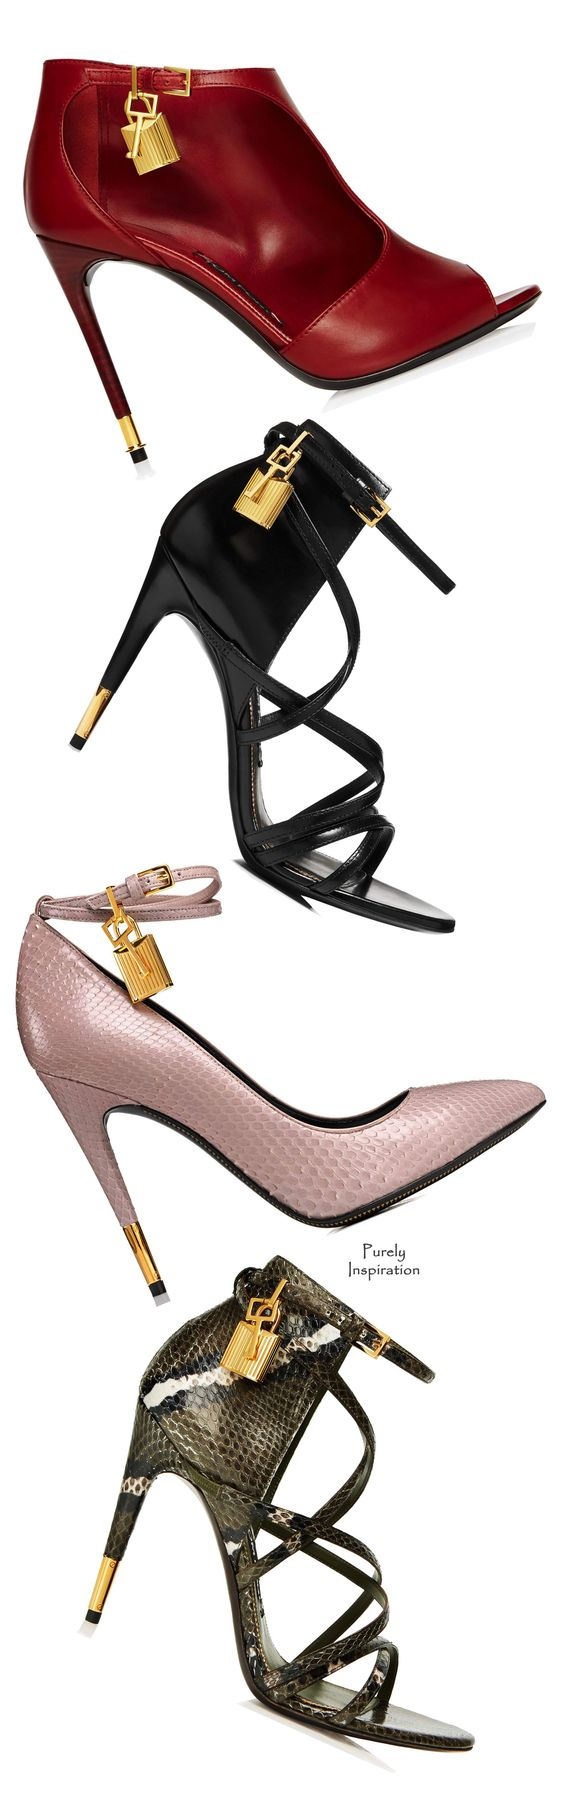 Tom Ford SS2015 Padlock Collection | Purely Inspiration